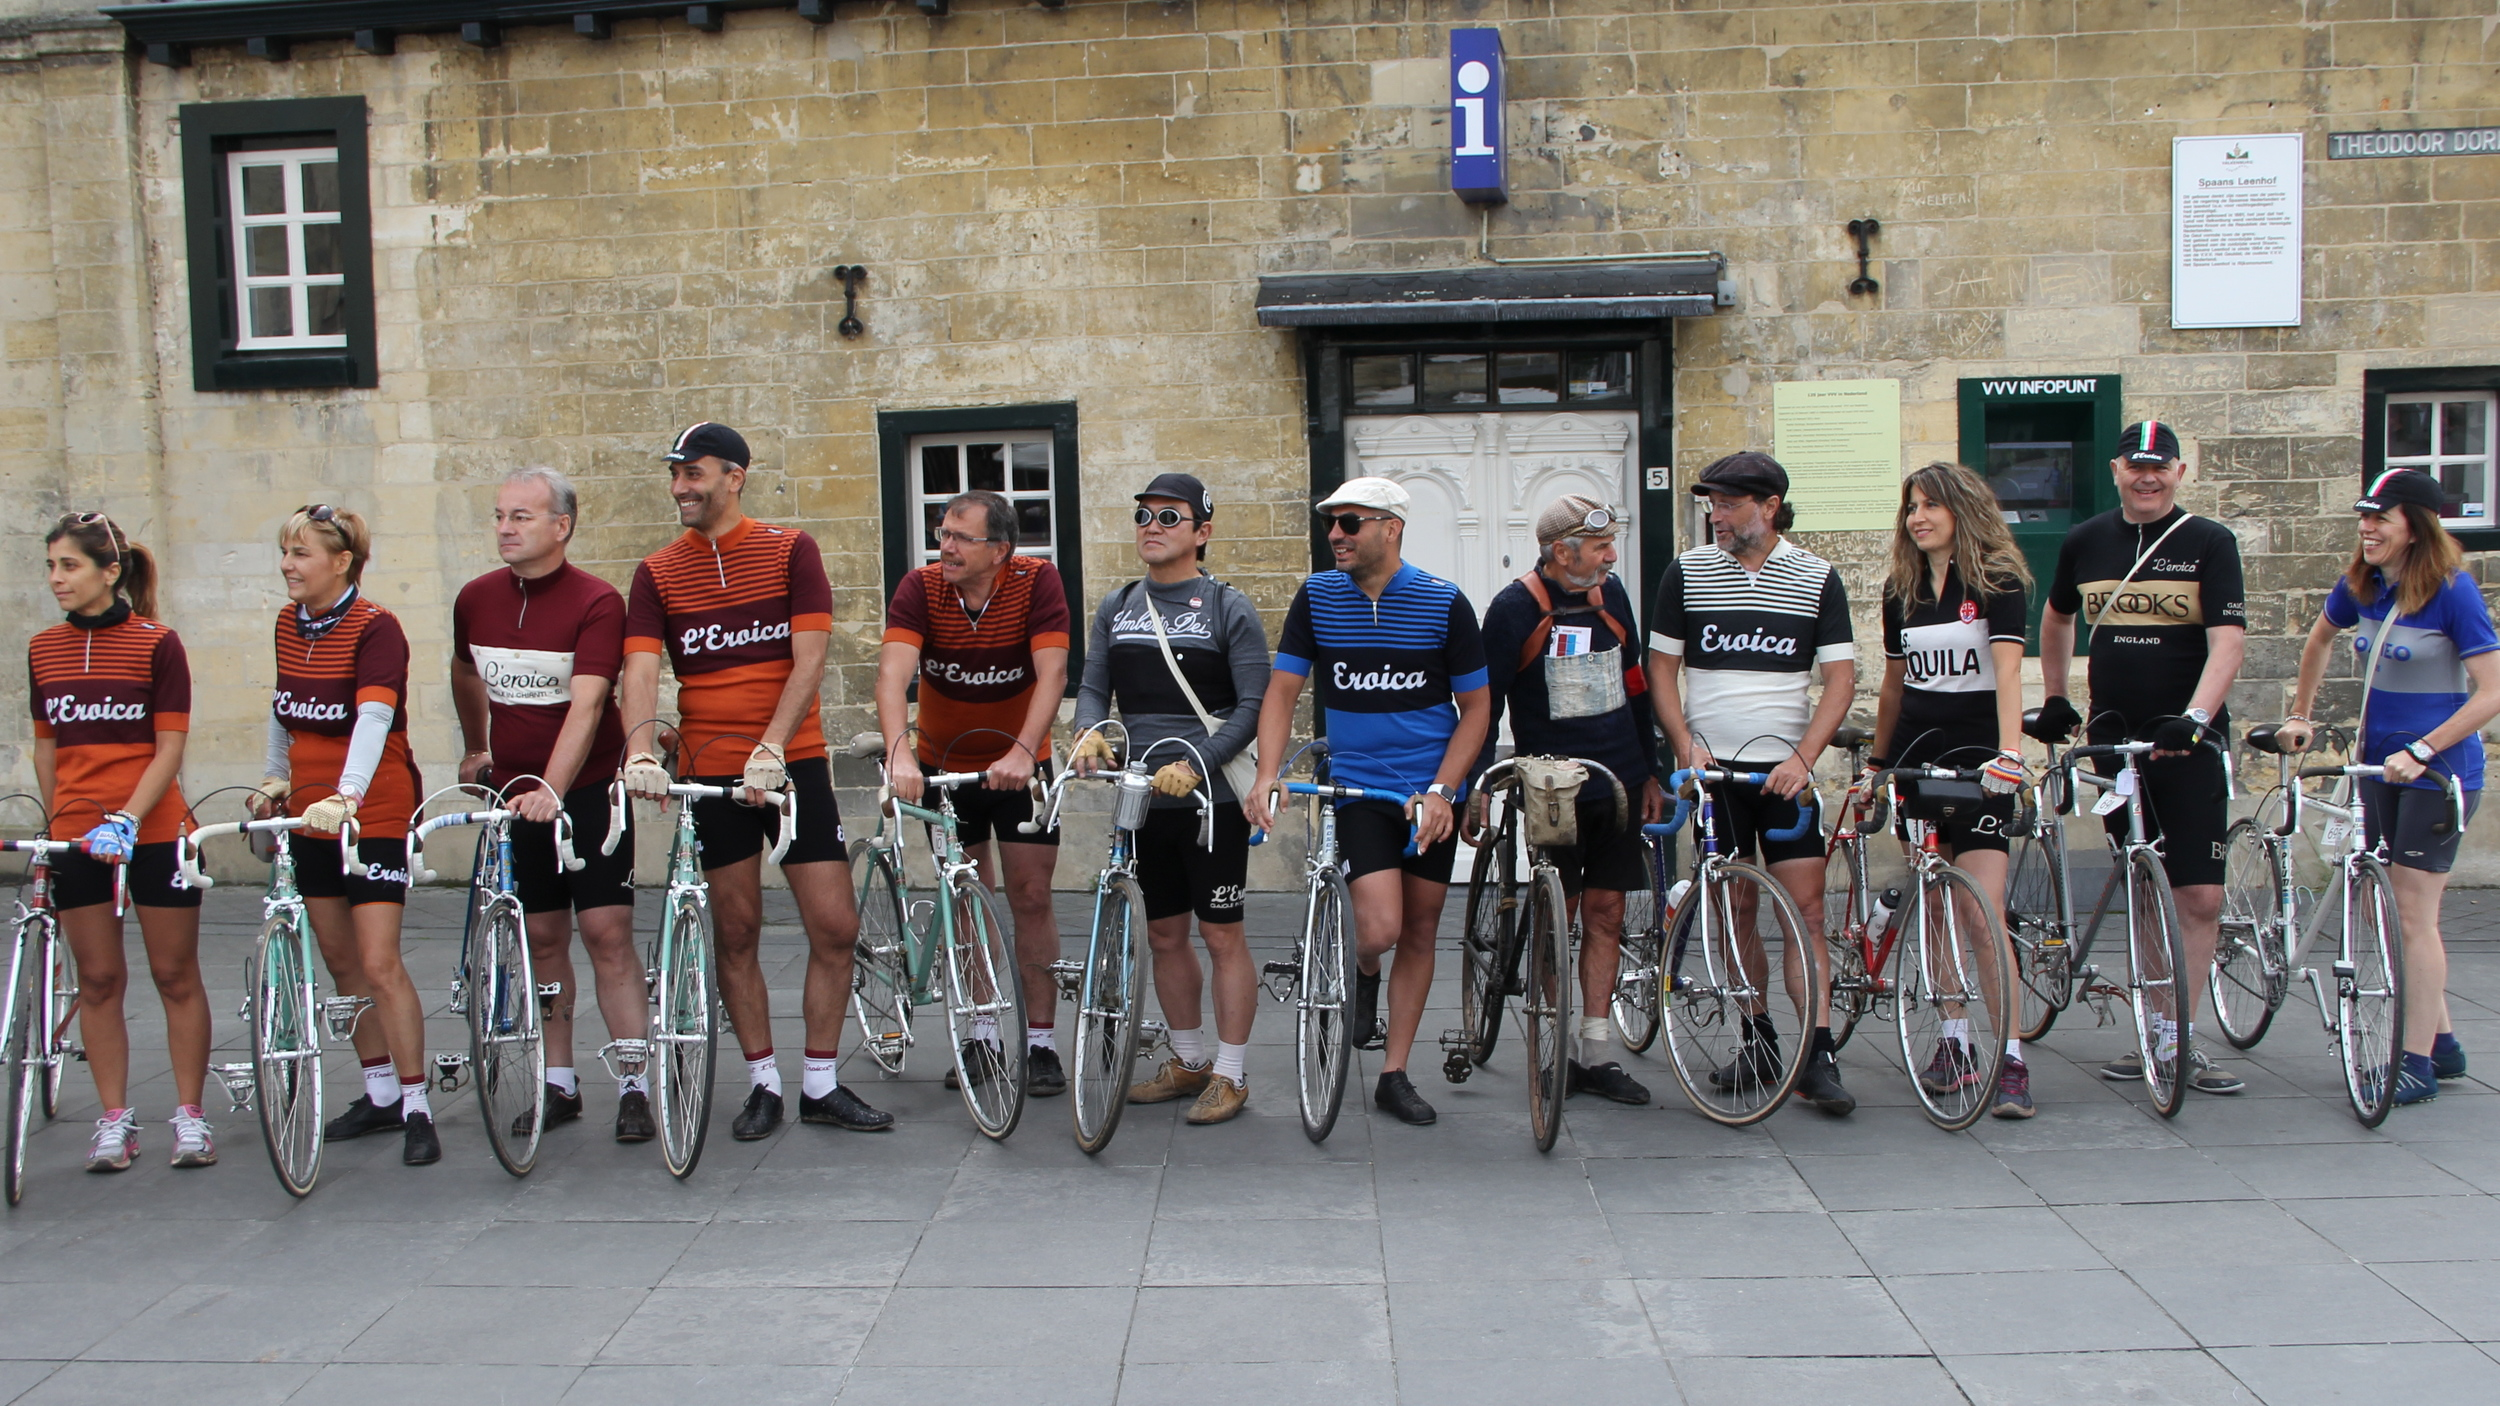 The Eroica team pose for pictures